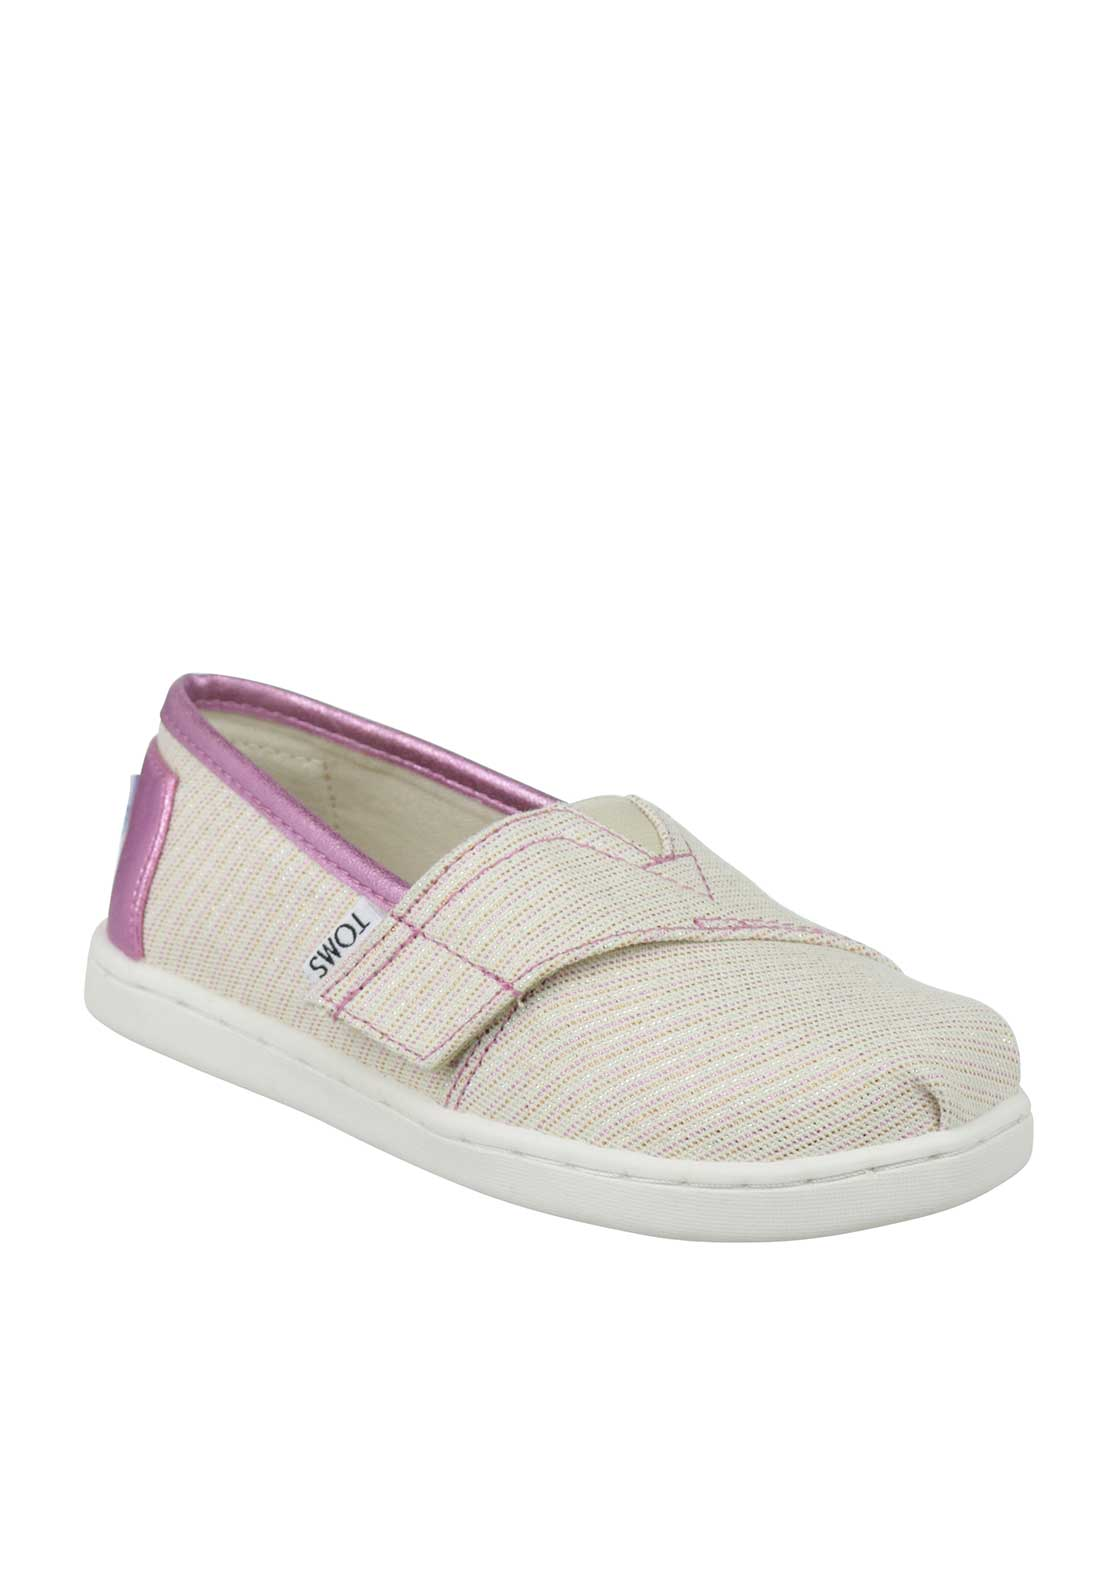 TOMS Tiny Classics Baby Girls Glitter Velcro Canvas Shoes, Beige and Pink